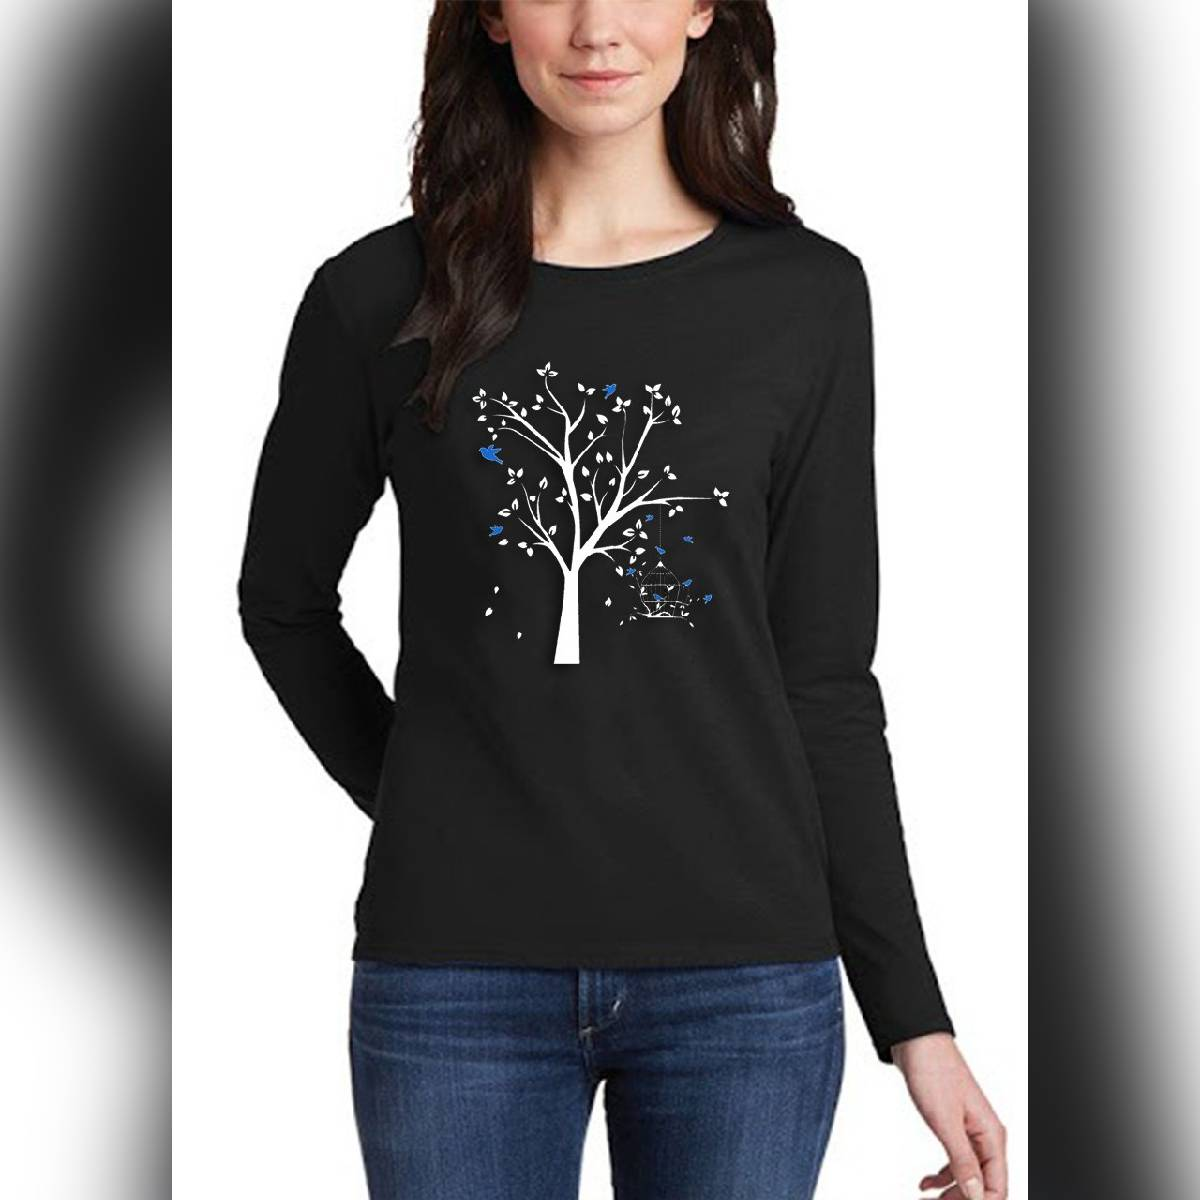 Black TREE Print Round Neck Full Sleeves Printed Casual T Shirts for Girls Women & Ladies